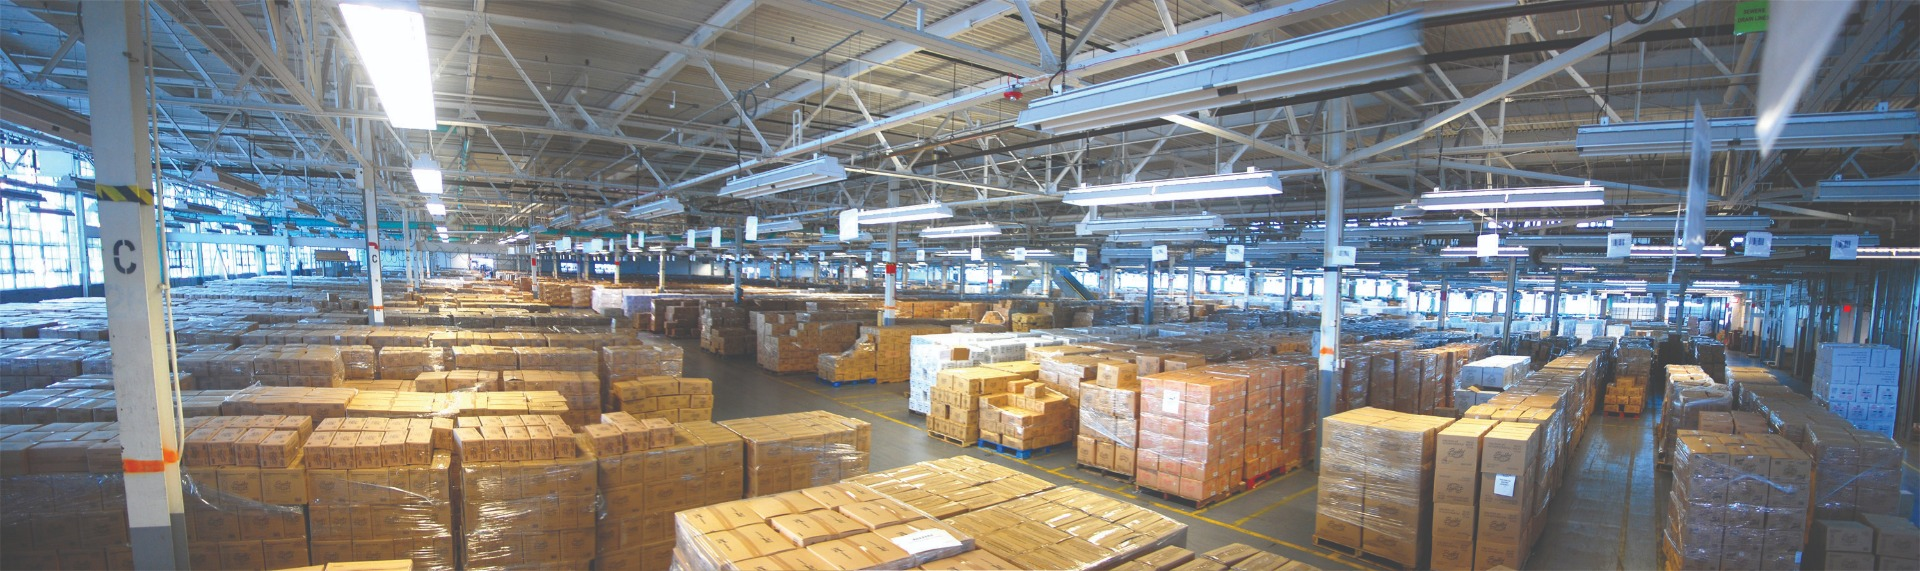 Berk Warehouse